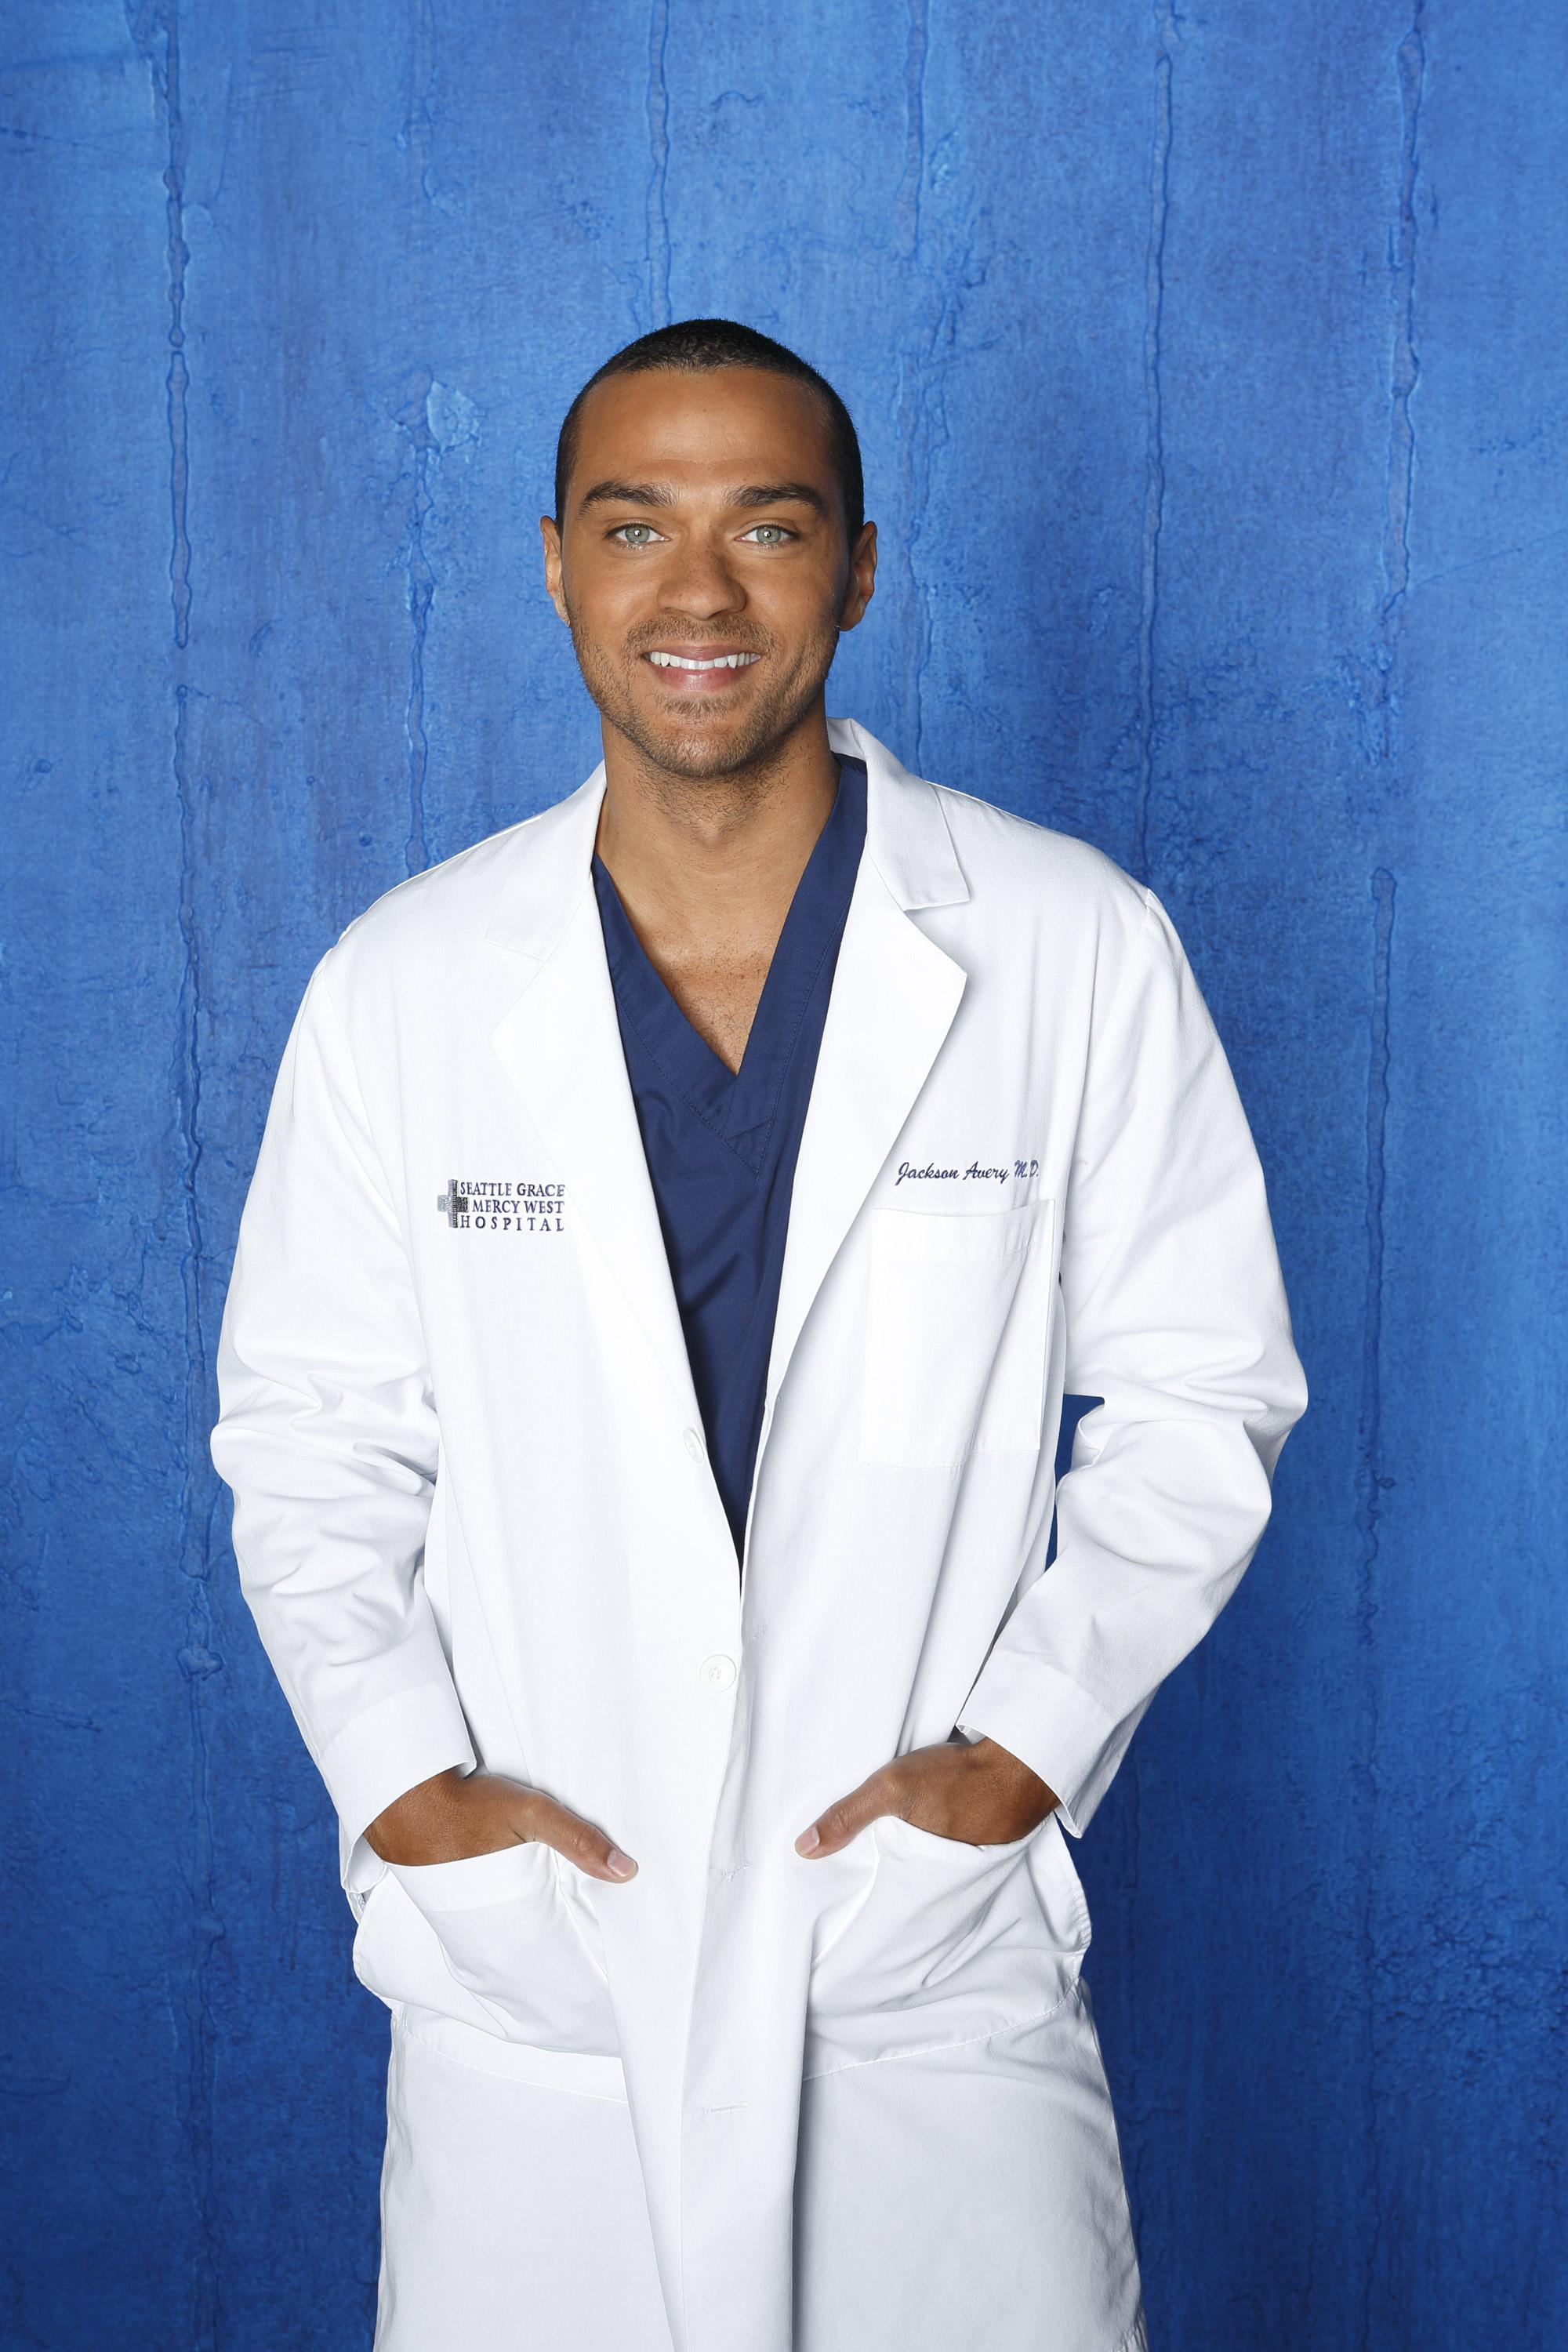 Greys-Anatomy-S09-Jesse-Williams-5-dvdbash | DVDbash